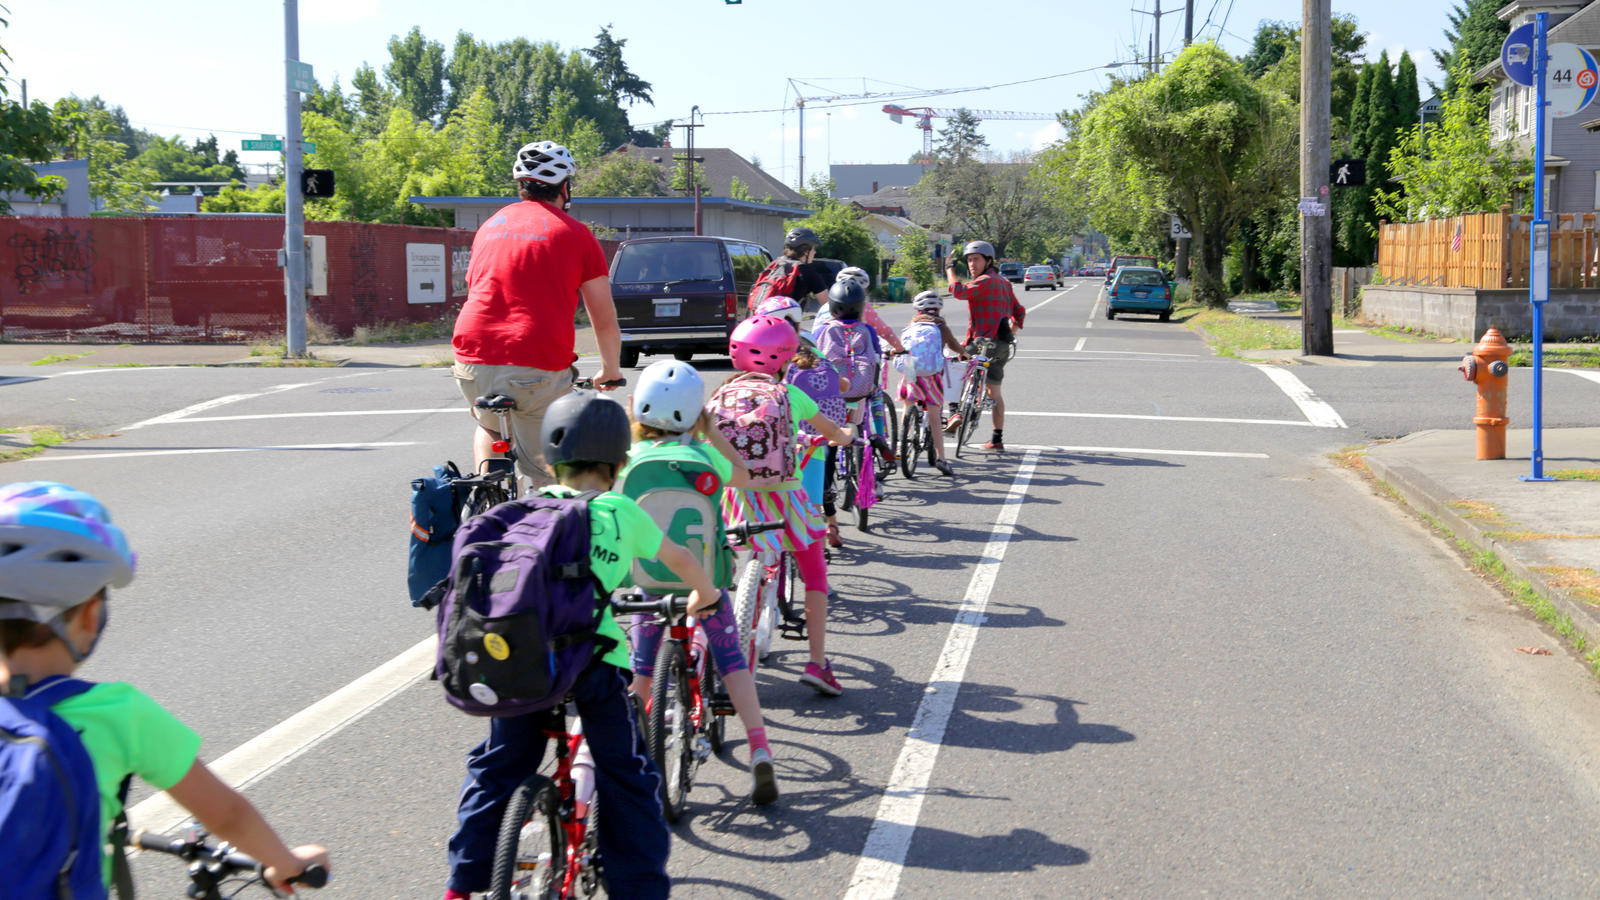 Nike has funded more than 70 bike-camp scholarships, including offsite camps in low-income communities, where the Community Cycling Center conducts free bike repair in the spring and summer.